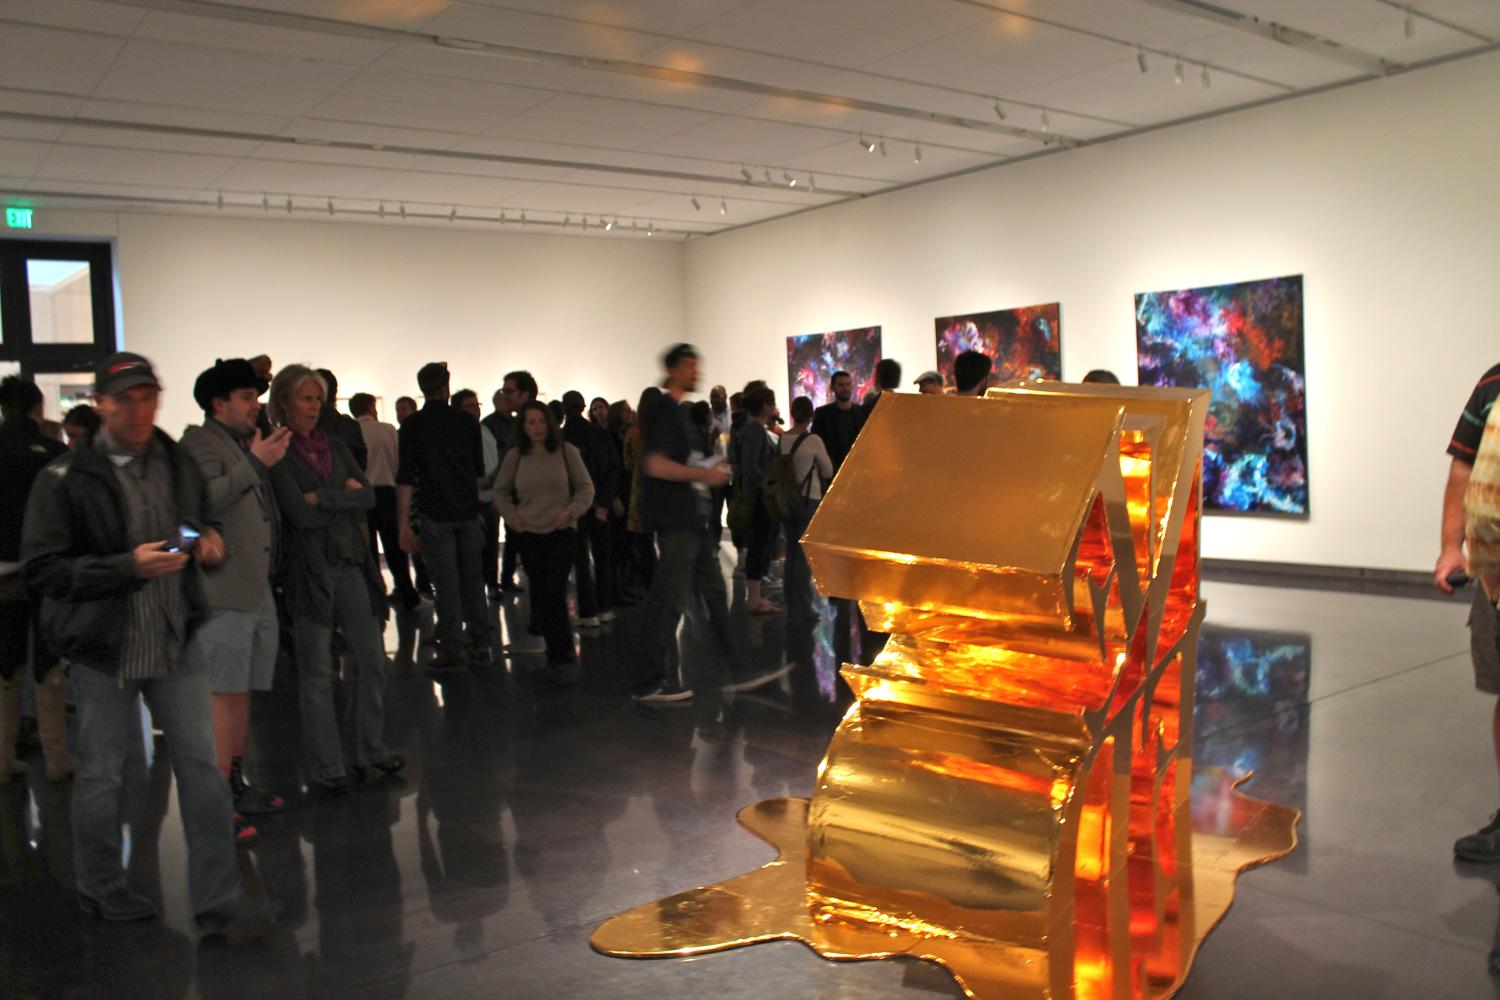 A crowd mingles in the gallery with a large gold sculpture in the foreground.